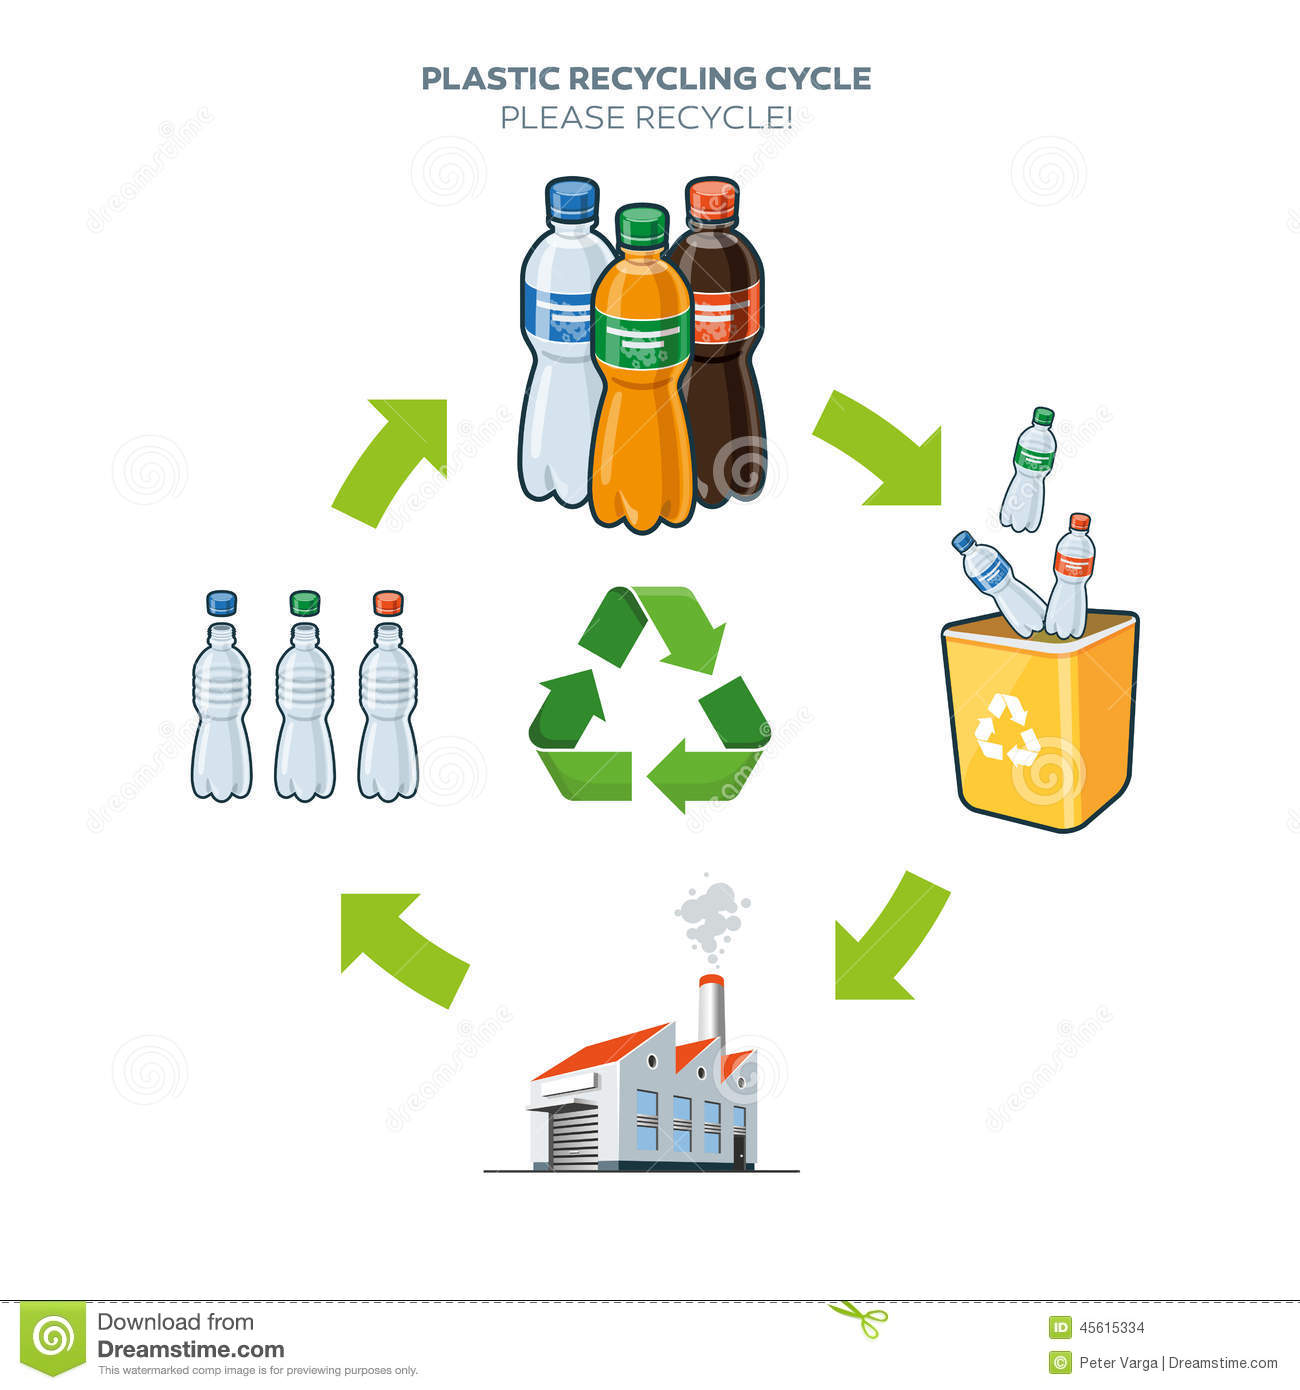 refilling and reuse of plastic water bottles biology essay Bottled water is essentially wasteful are waste and uncertainty over the long-term health effects created by plastic buying bottled water is wrong.